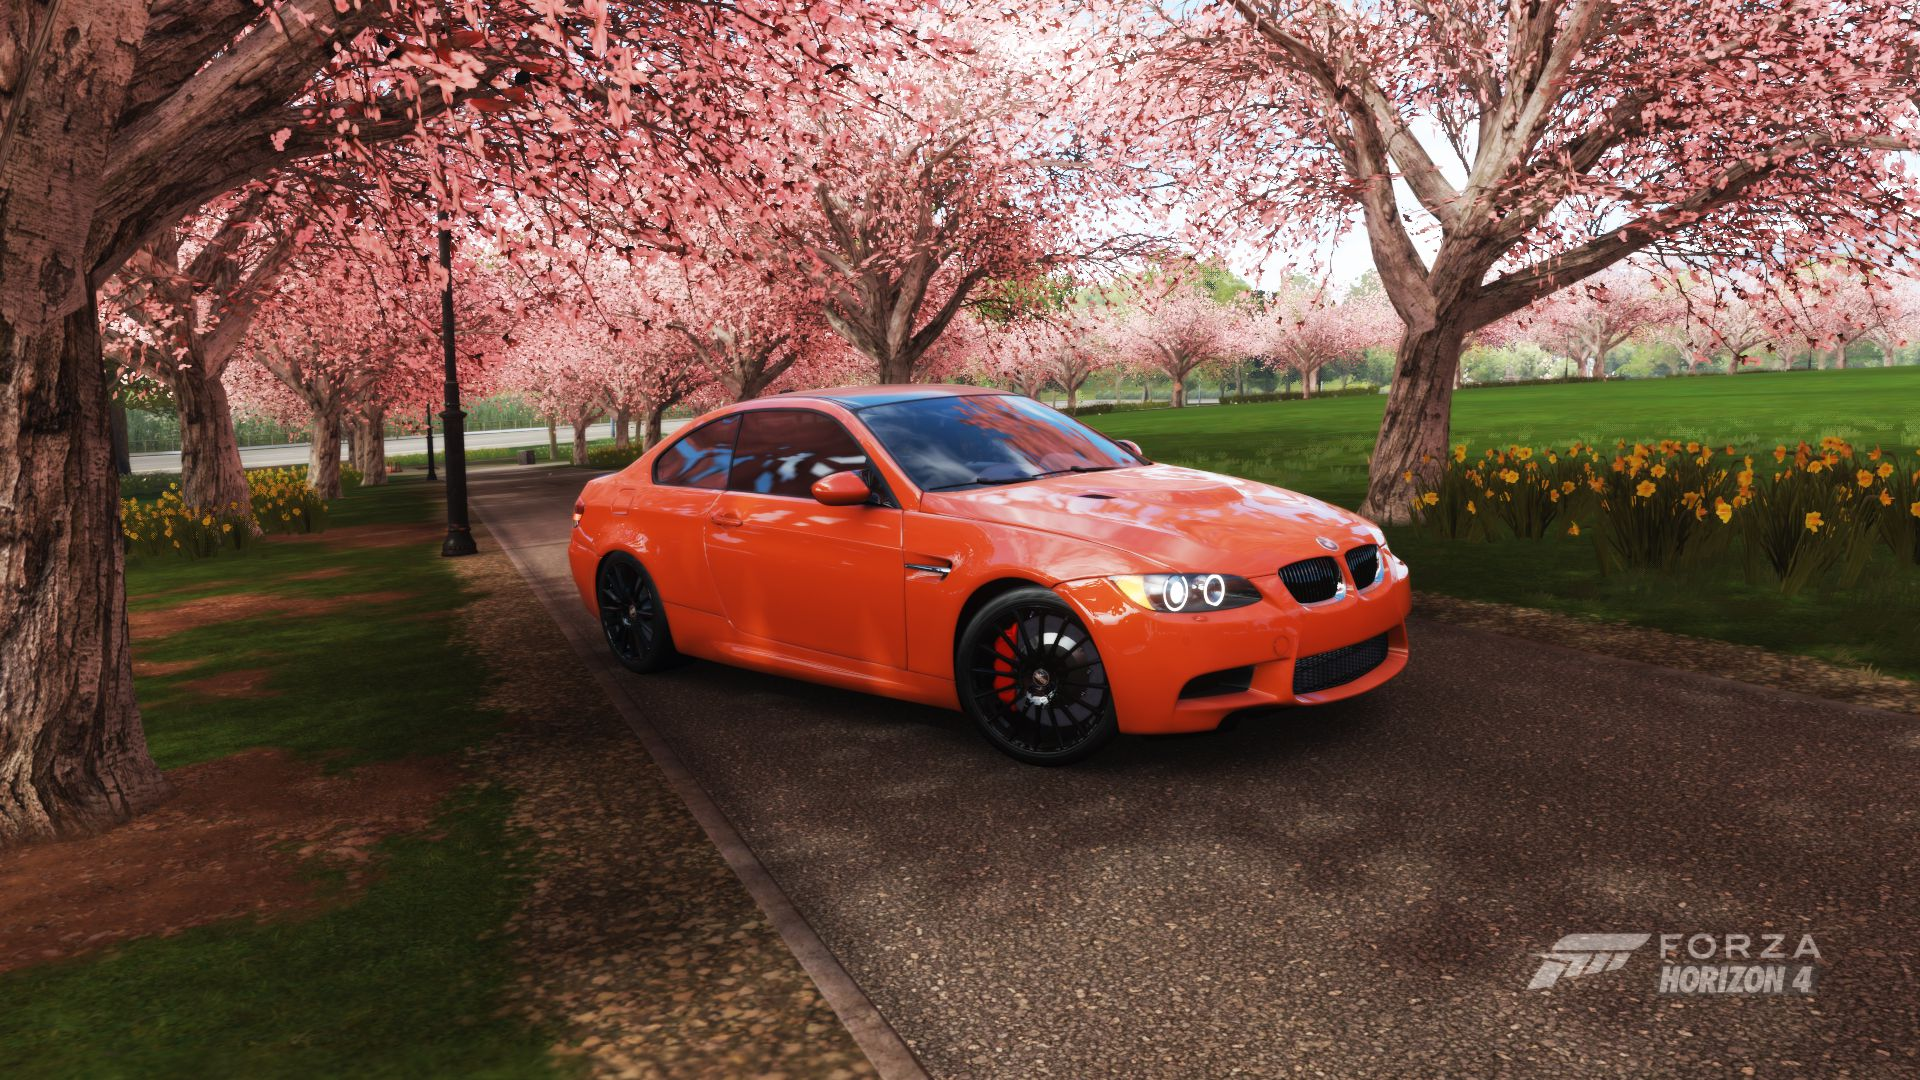 BMW M3 E90 - 2012 model in red colour, from Forza Horizon 4